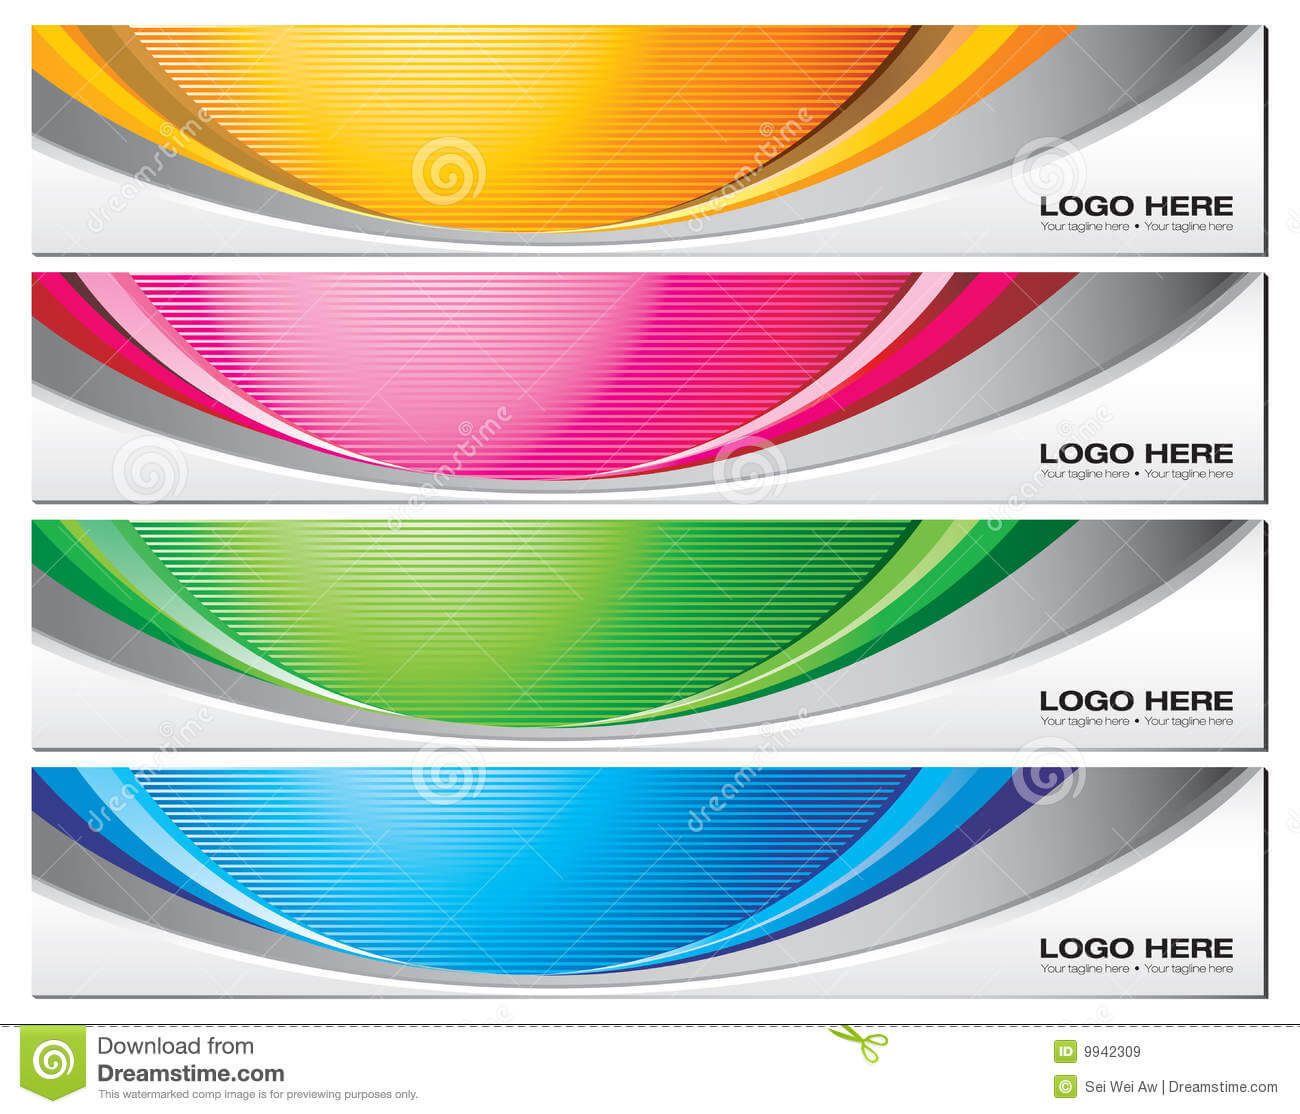 Banner Templates Stock Vector. Illustration Of Vector - 9942309 Regarding Free Online Banner Templates